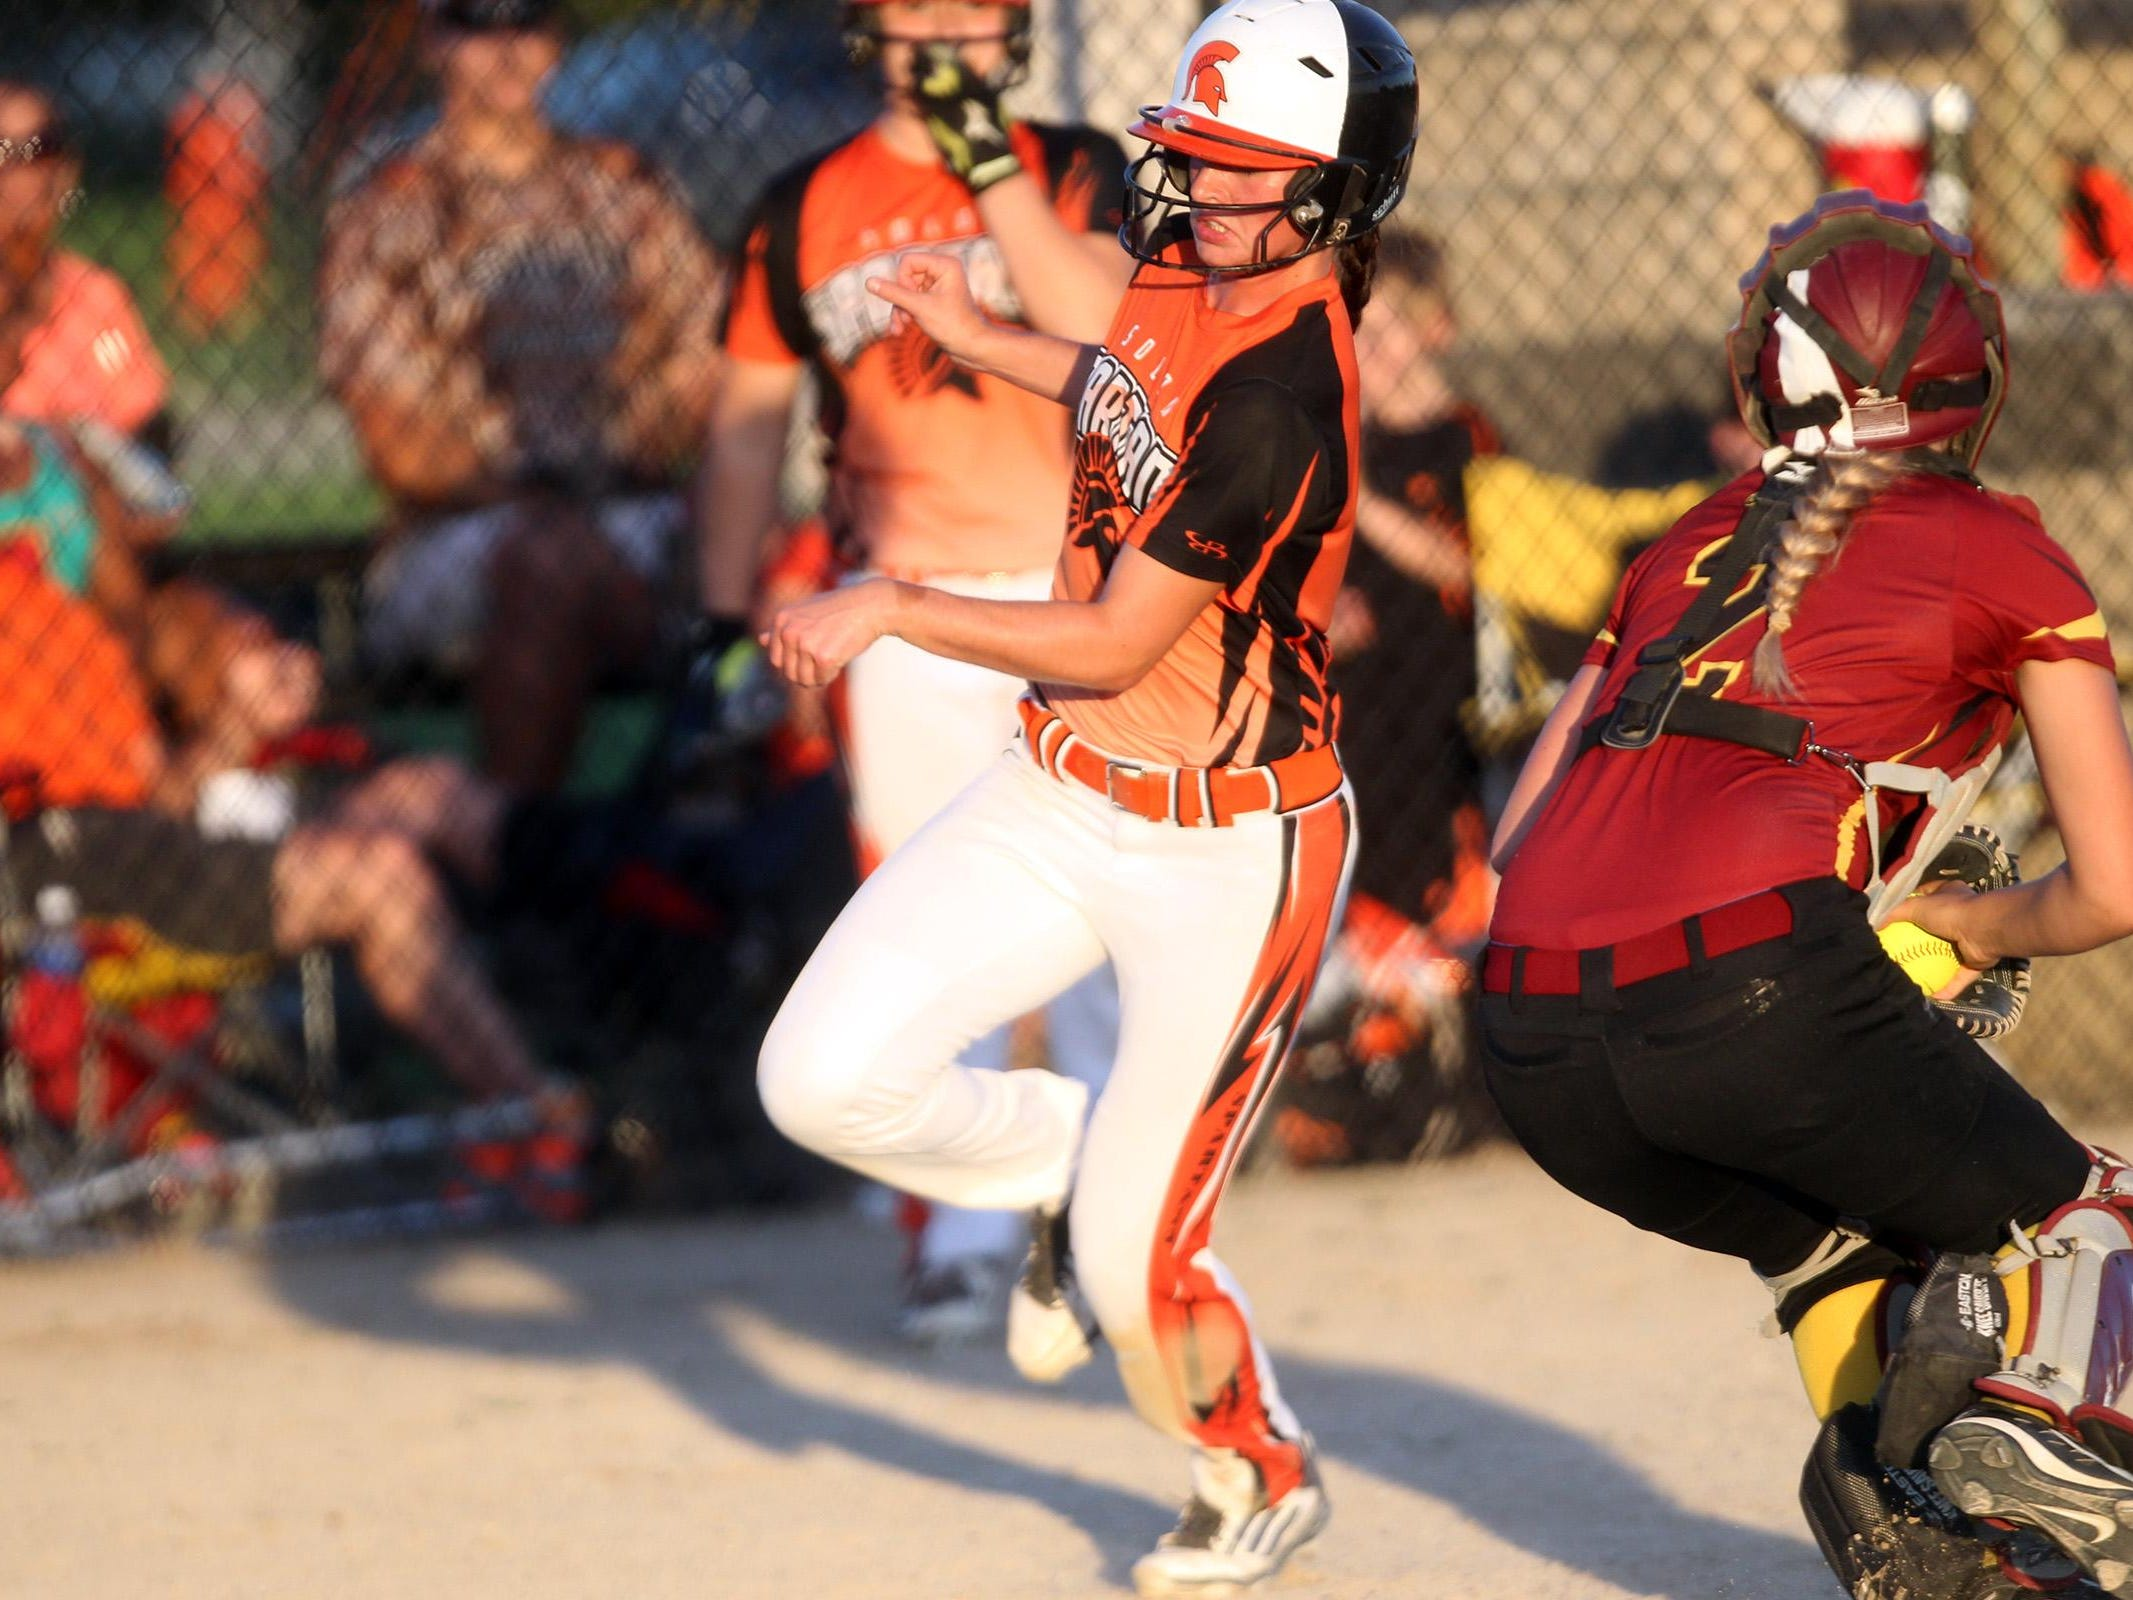 Solon's Sydney Lawson dodges PCM, Monroe's Courtney Bridges to run home during their Class 3A regional championship in Grinnell on Monday, July 13, 2015. David Scrivner / Iowa City Press-Citizen